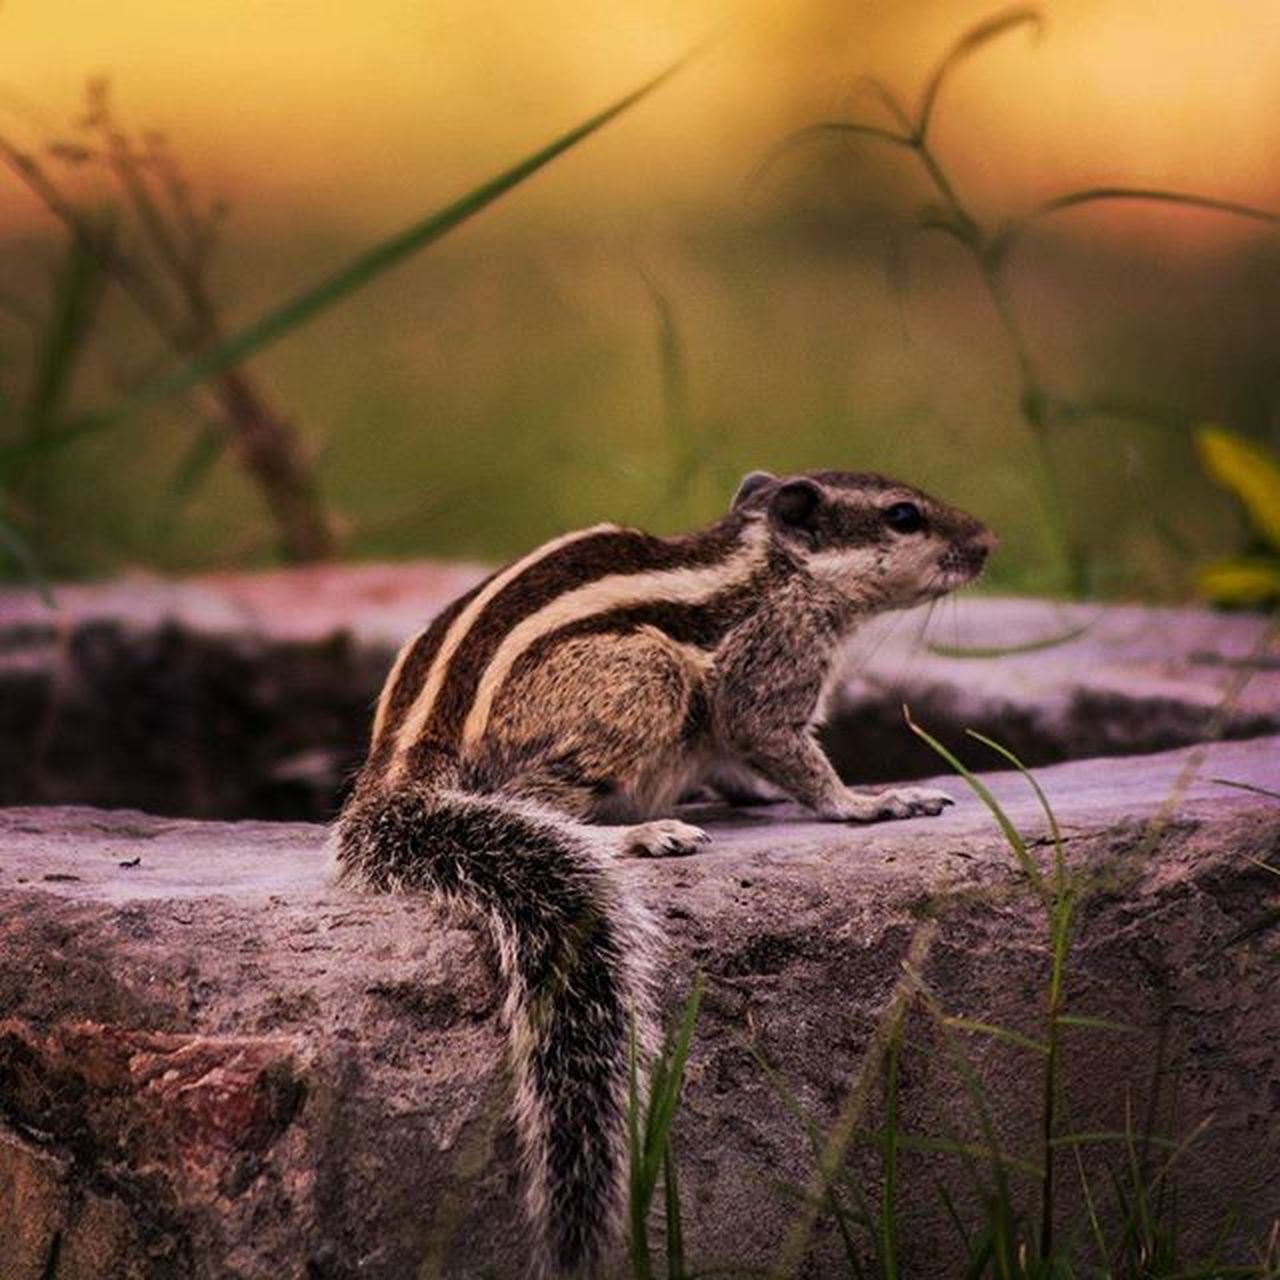 Animals Animal Squirrel TagFire Photooftheday Cute Instagood Animales Cute Love Nature Animallovers TFers Vish_shenanigans Justgoshoot Livefolk Shoottokill Huntgram Inspiroindia India_gram Soi Liveauthentic VSCO Vscoindia Vscofeed nationalgeographic nationalgeographic_ animalplanet nikonlover nikon